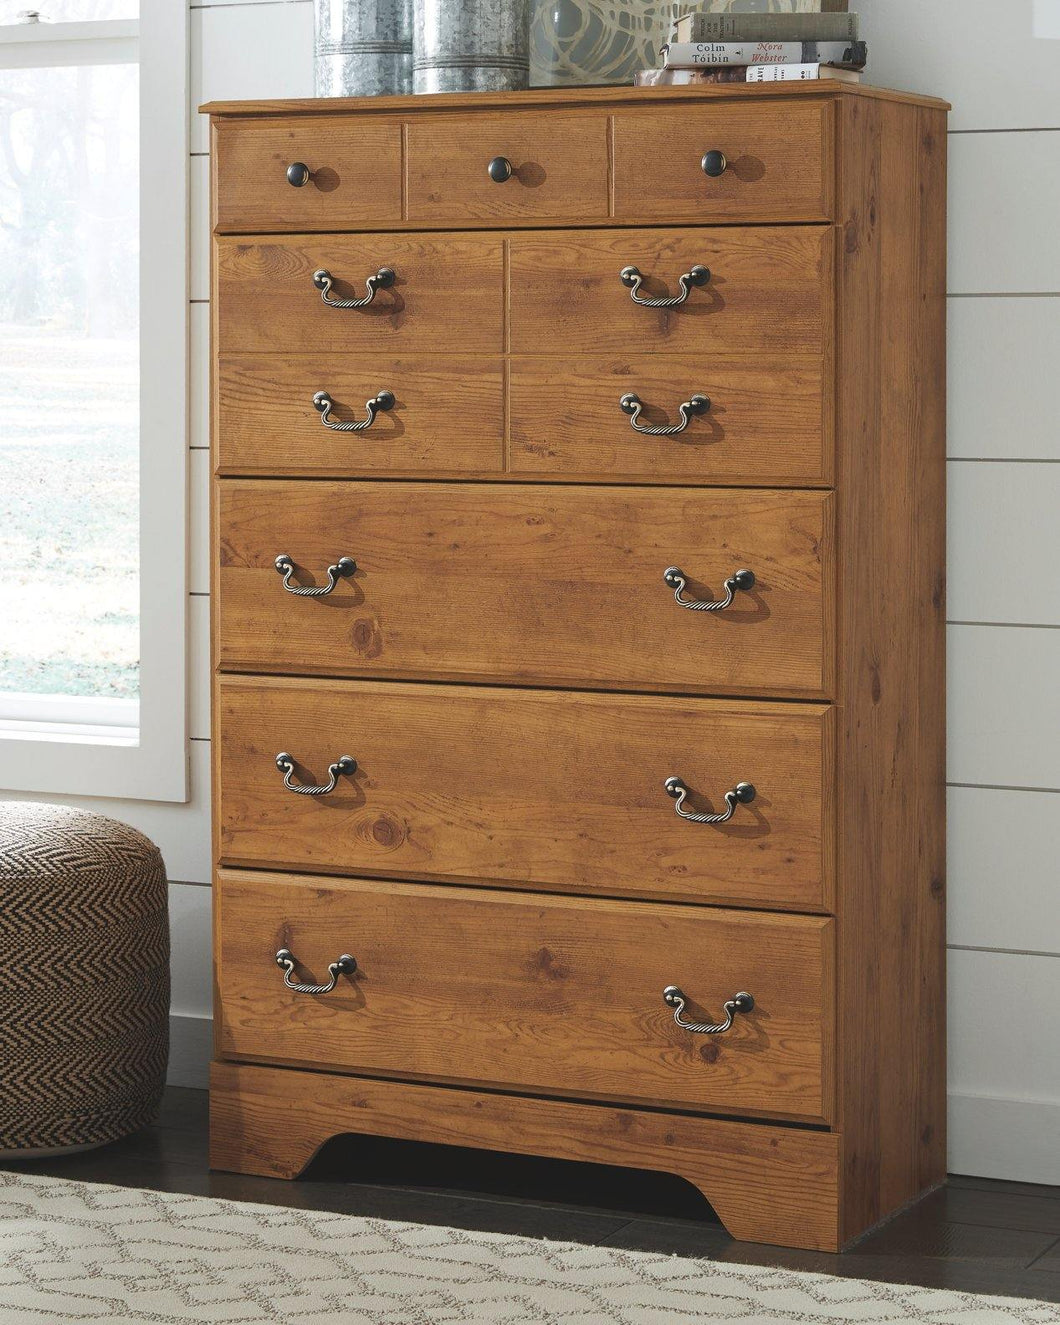 Bittersweet Chest of Drawers B219-46 By Ashley Furniture from sofafair